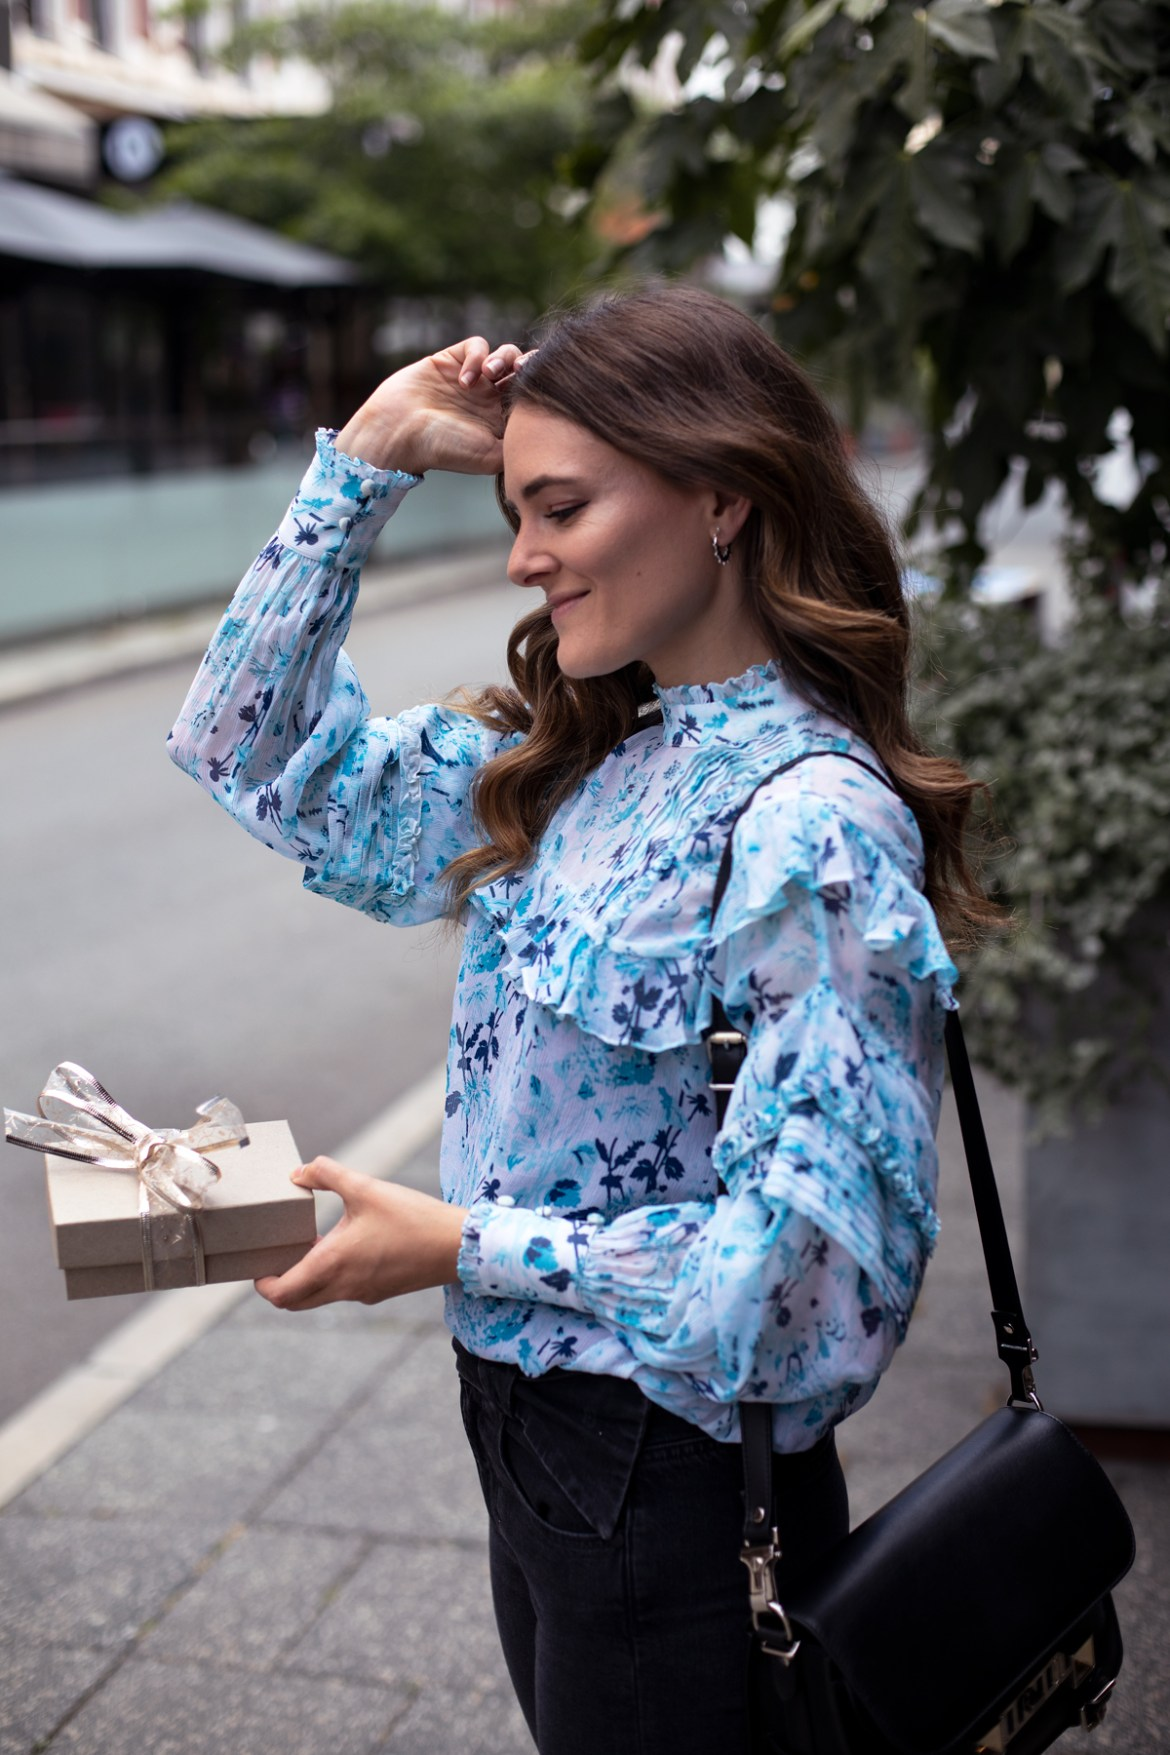 2018 Christmas gift guide Inspiring Wit blog featuring women's gift ideas Hemant and Nandita silk blouse and Paige jeans